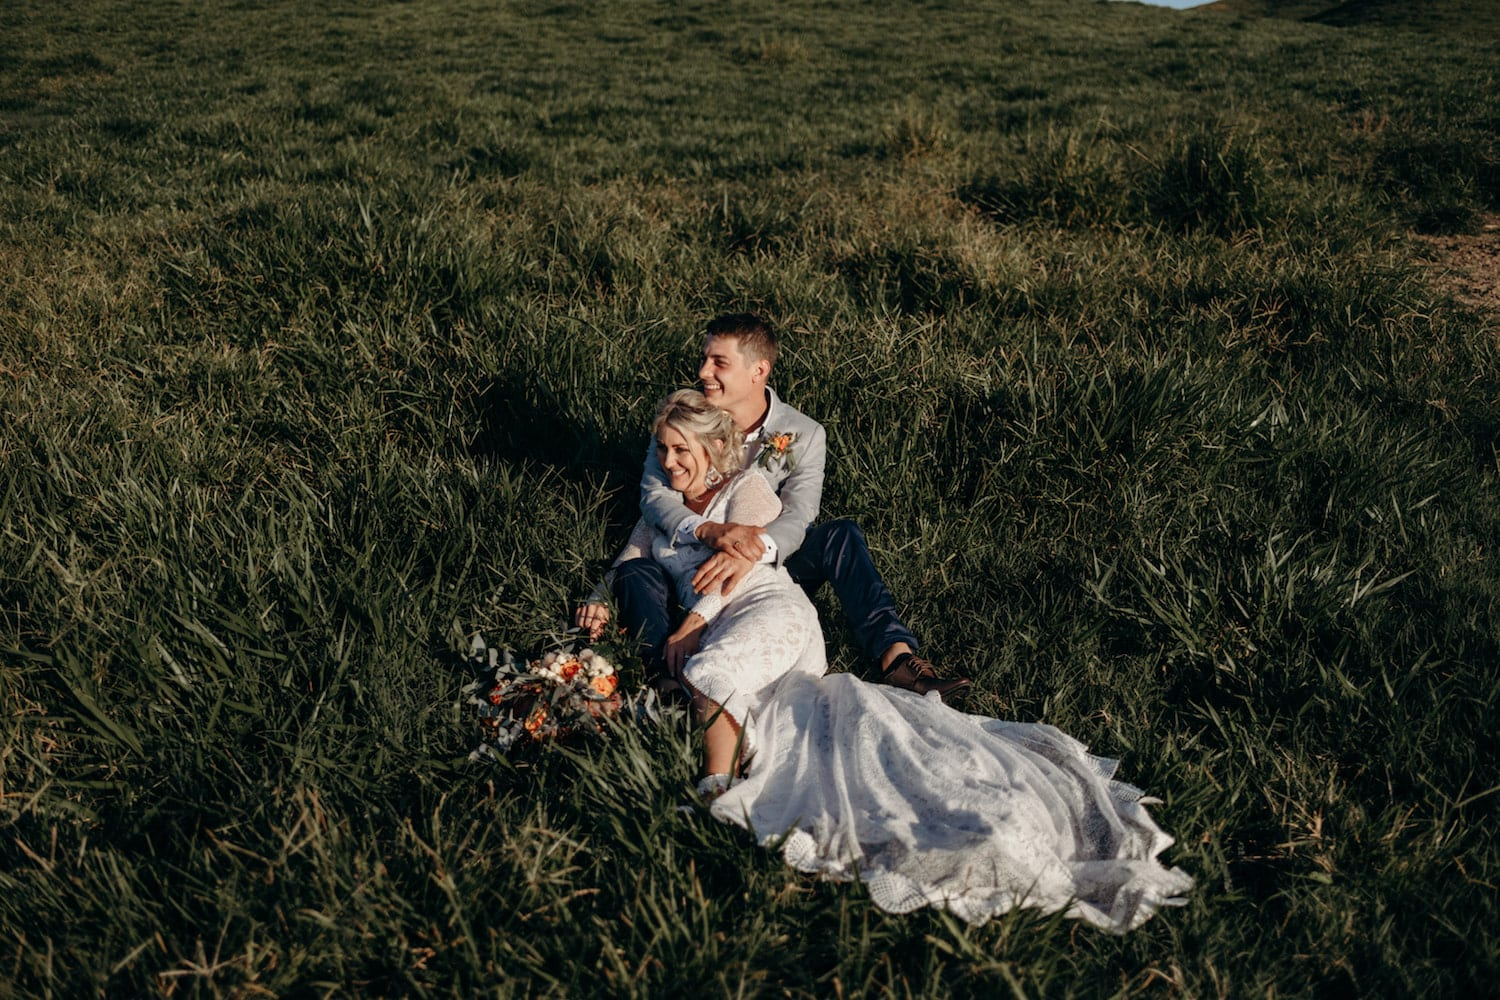 Mission Beach wedding couple laying in the grass